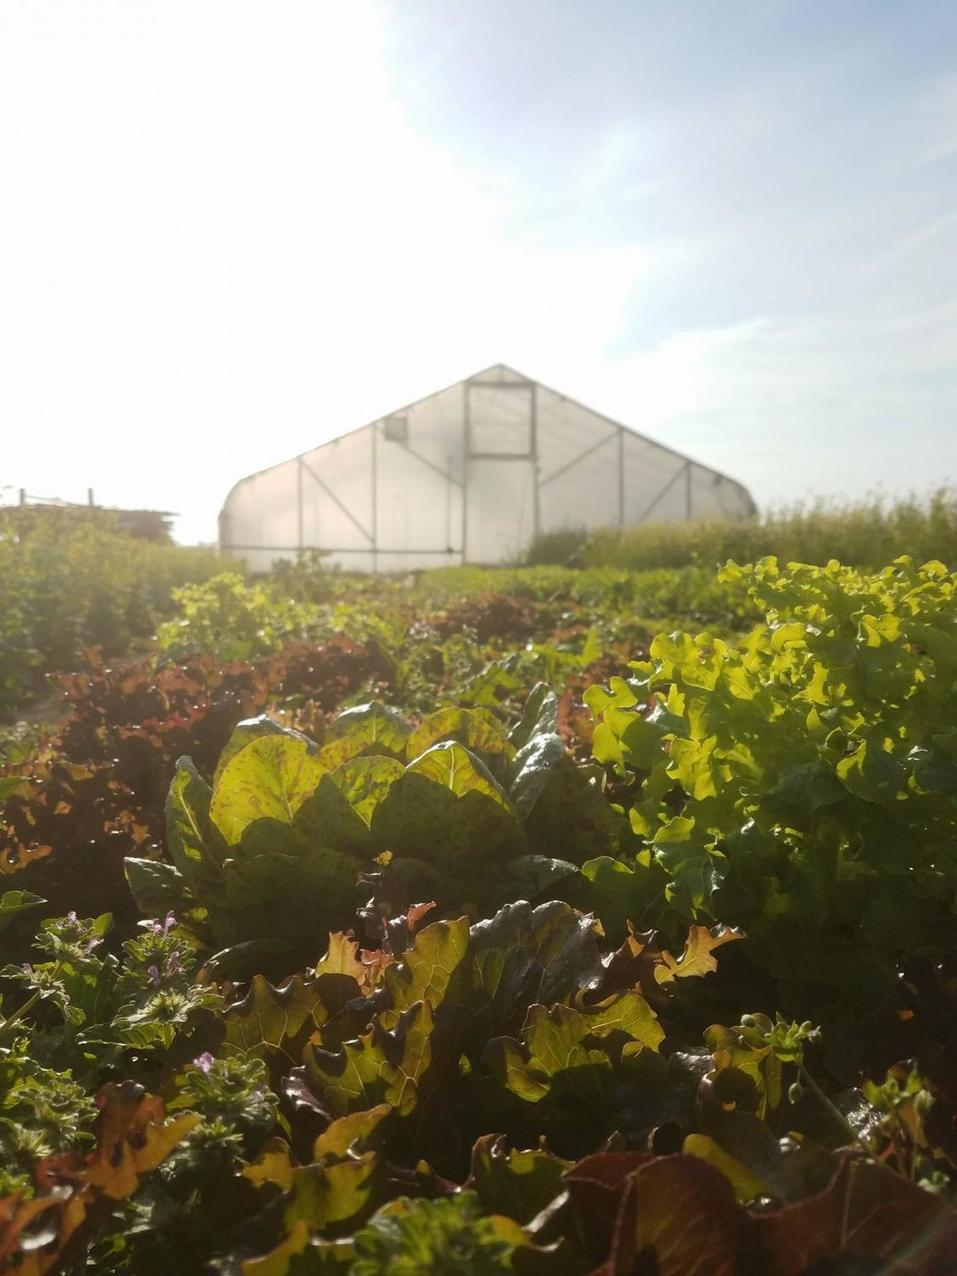 , Urbana farm practices sustainability, The Circular Economy, The Circular Economy